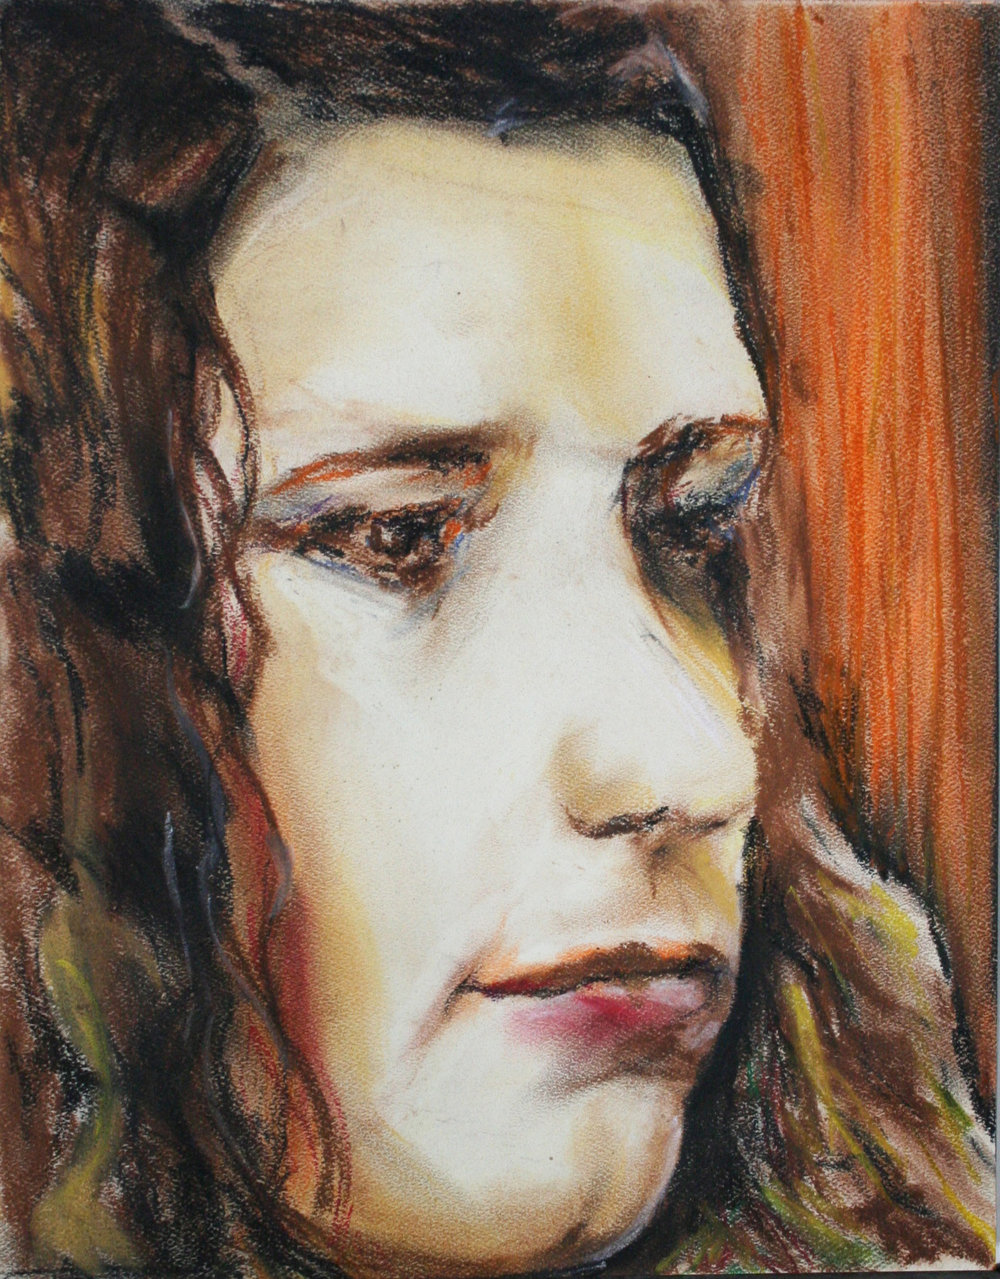 Anthony J. Robinson did this pastel drawing.